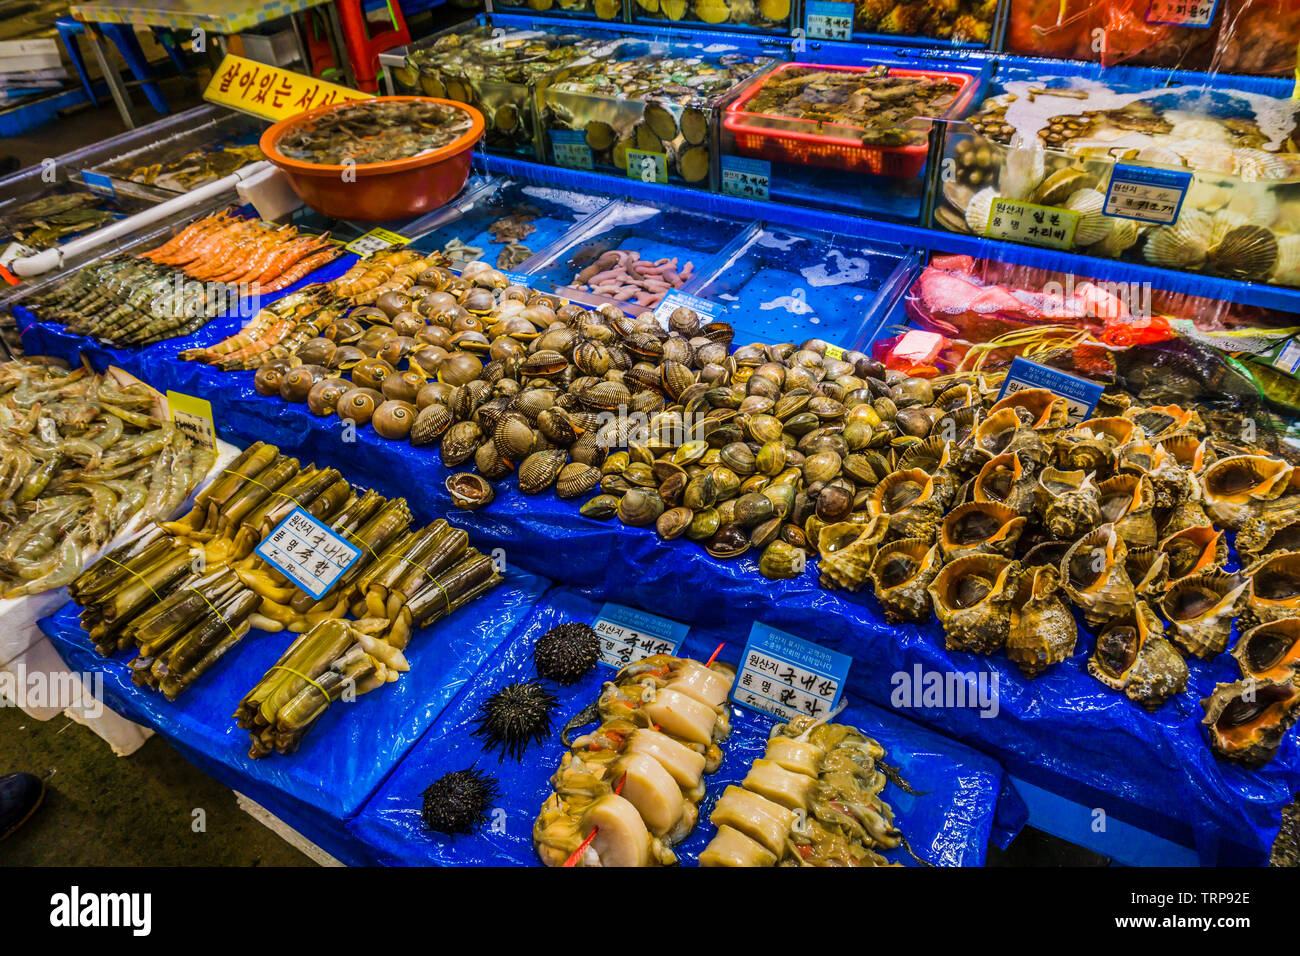 Seoul, South Korea - May 17, 2017:   Noryangjin Fish Market, the largest and oldest fish market in Korea, located in the Noryangjin-dong neighborhood. Stock Photo